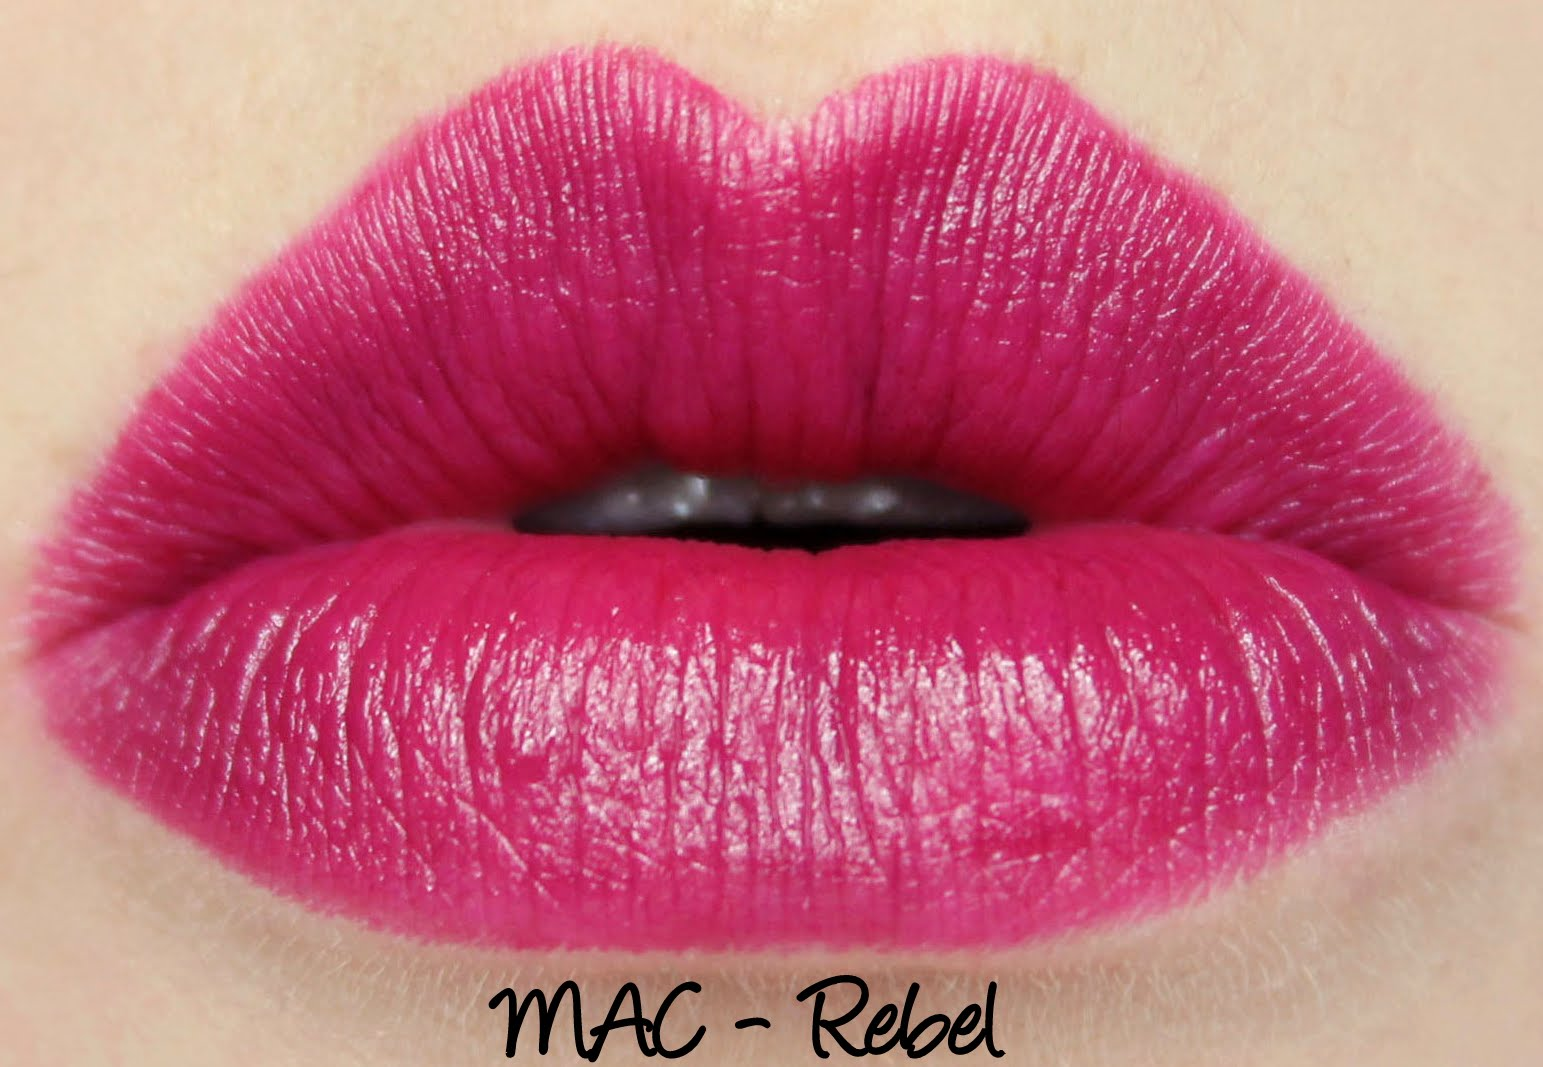 MAC Rebel lipstick swatch